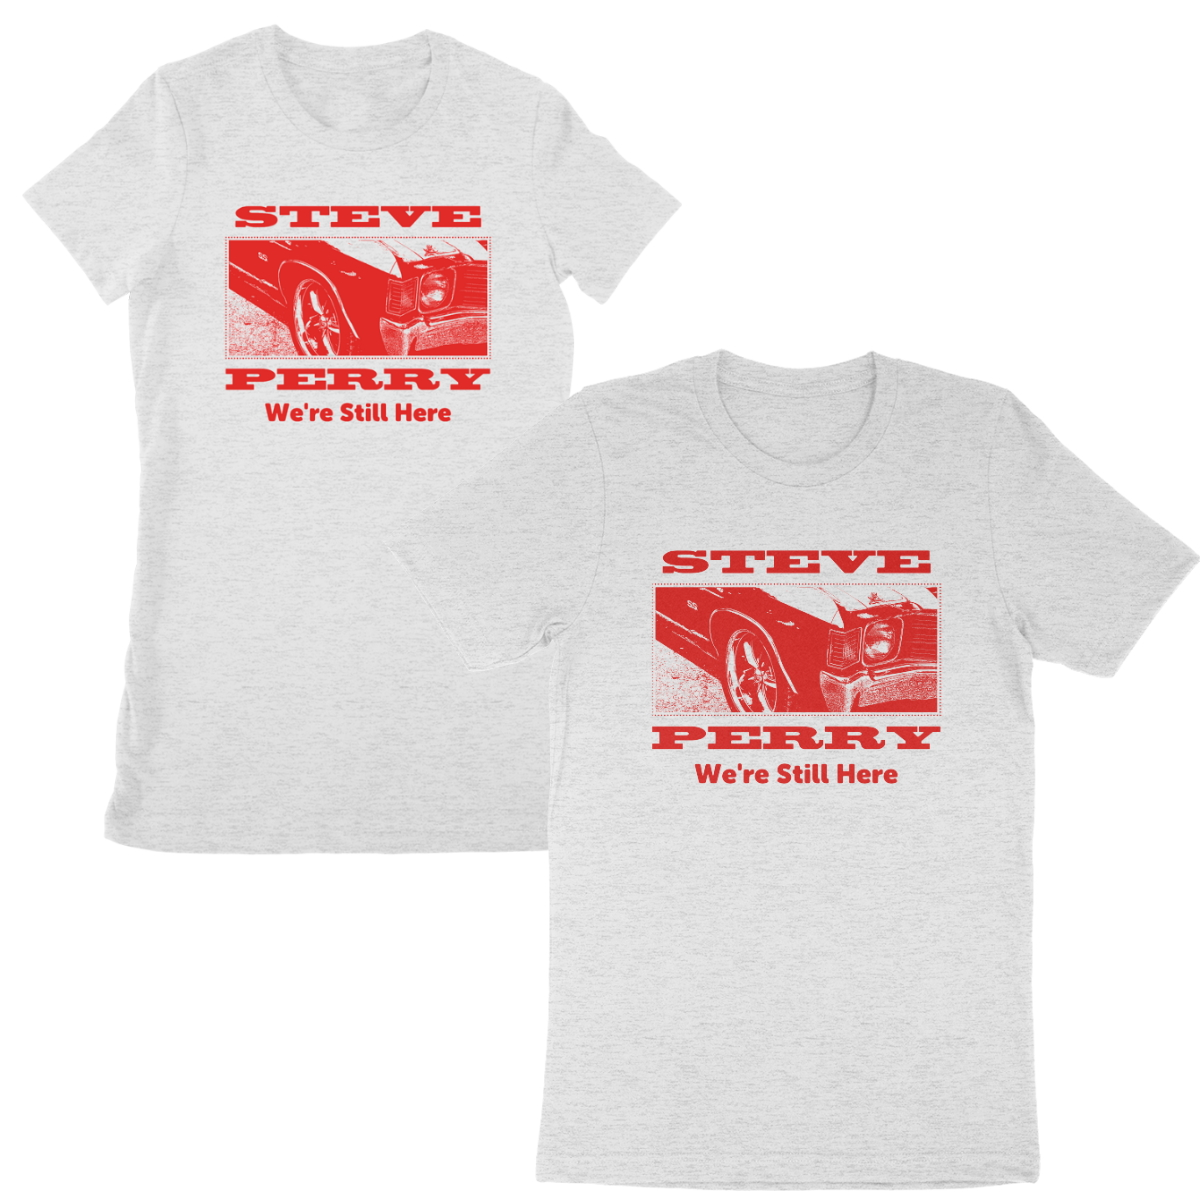 Vintage Chevy Tee (Unisex and Women's Options)